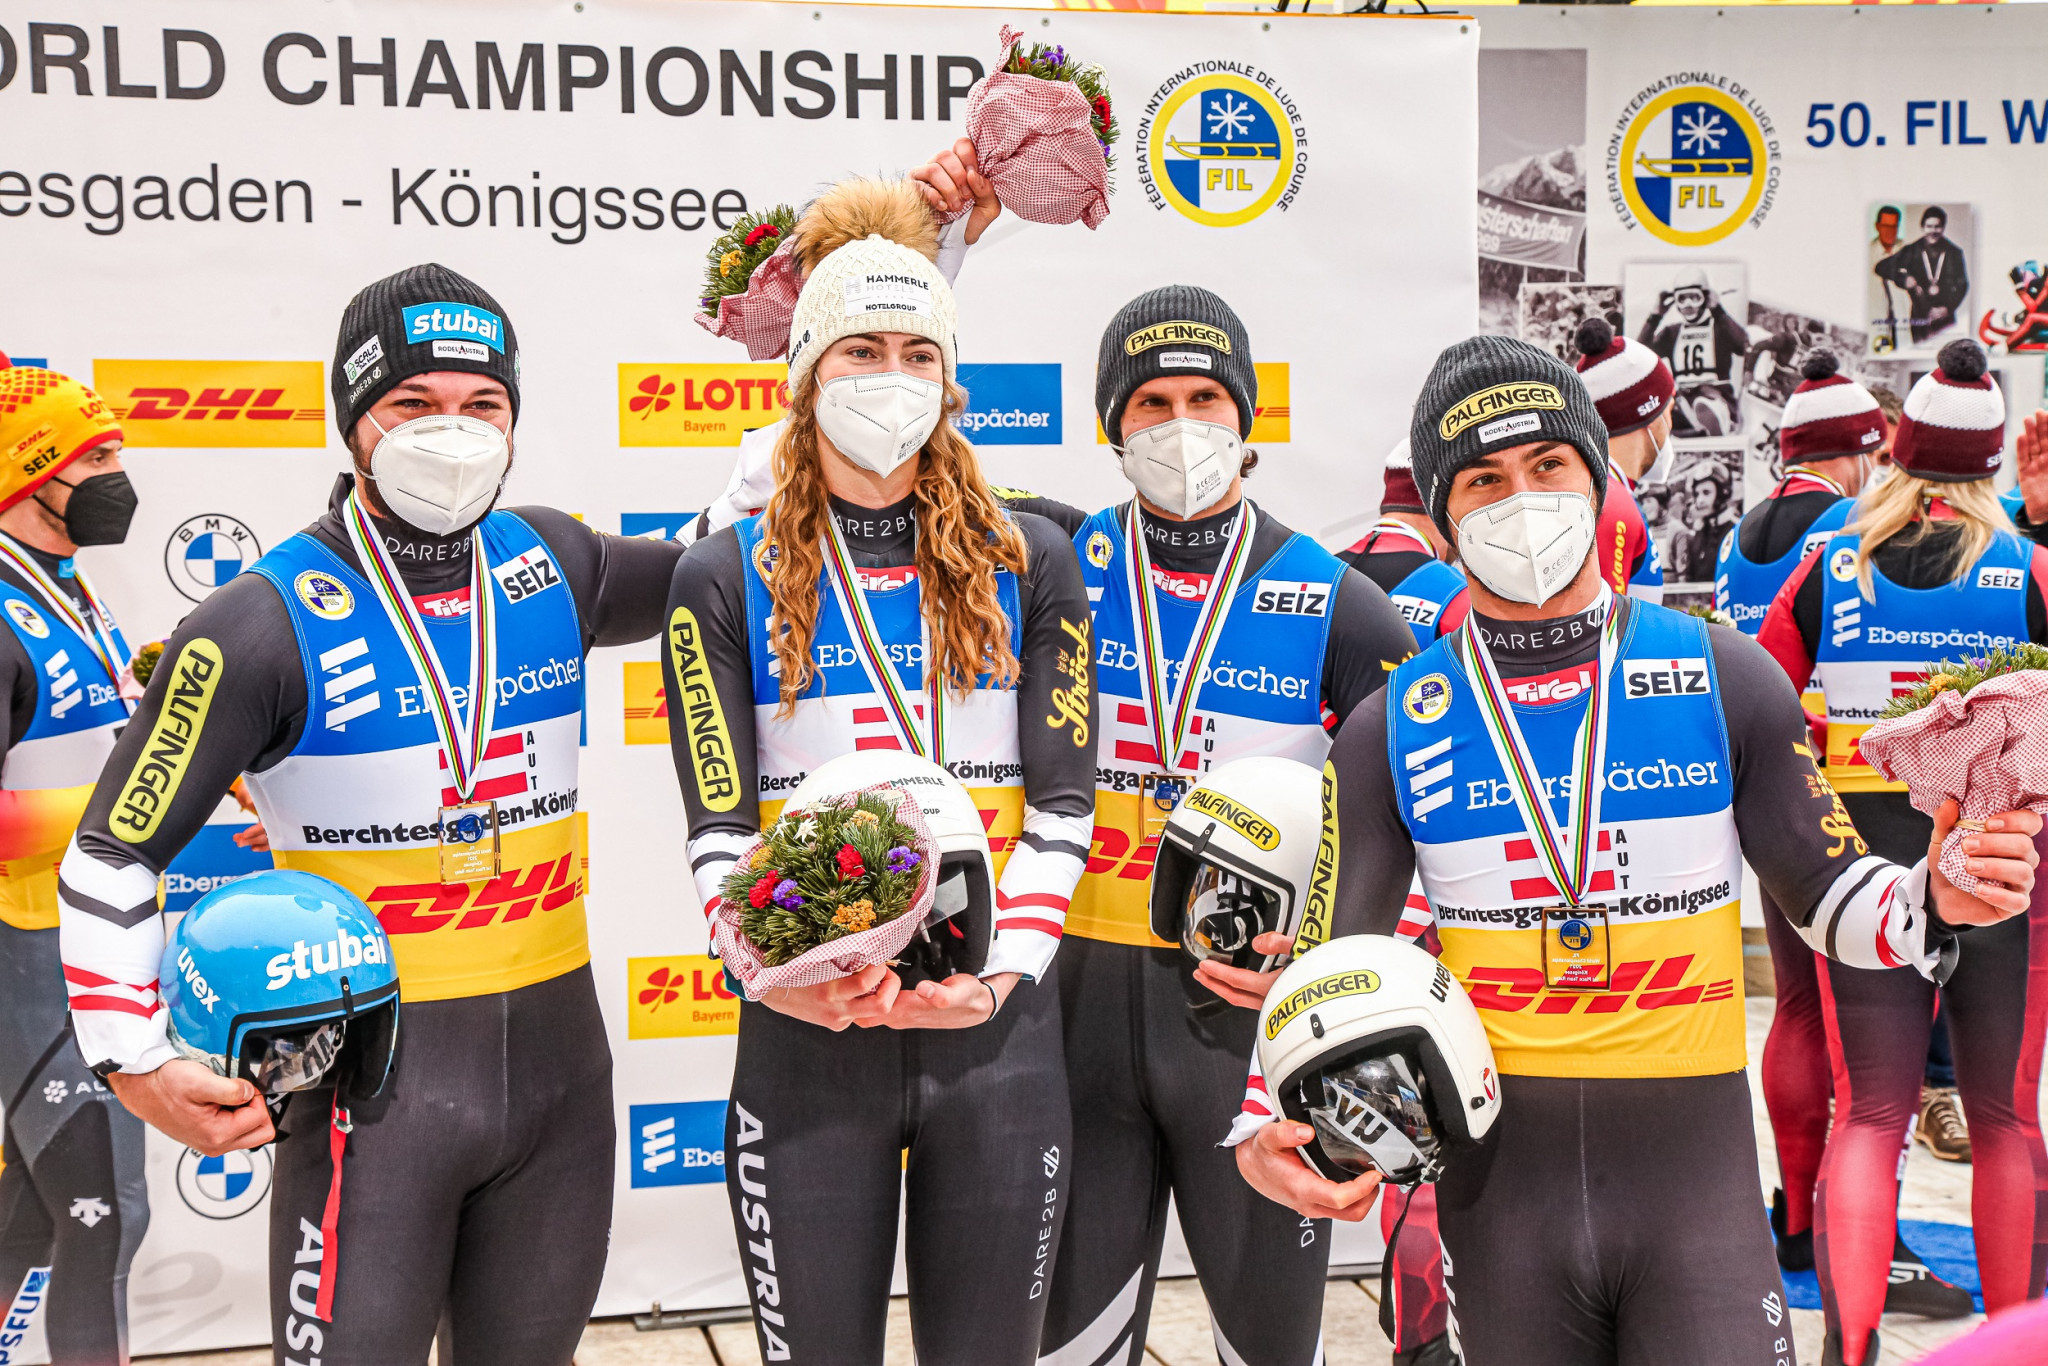 Austria beat hosts Germany to win team relay gold at Luge World Championships